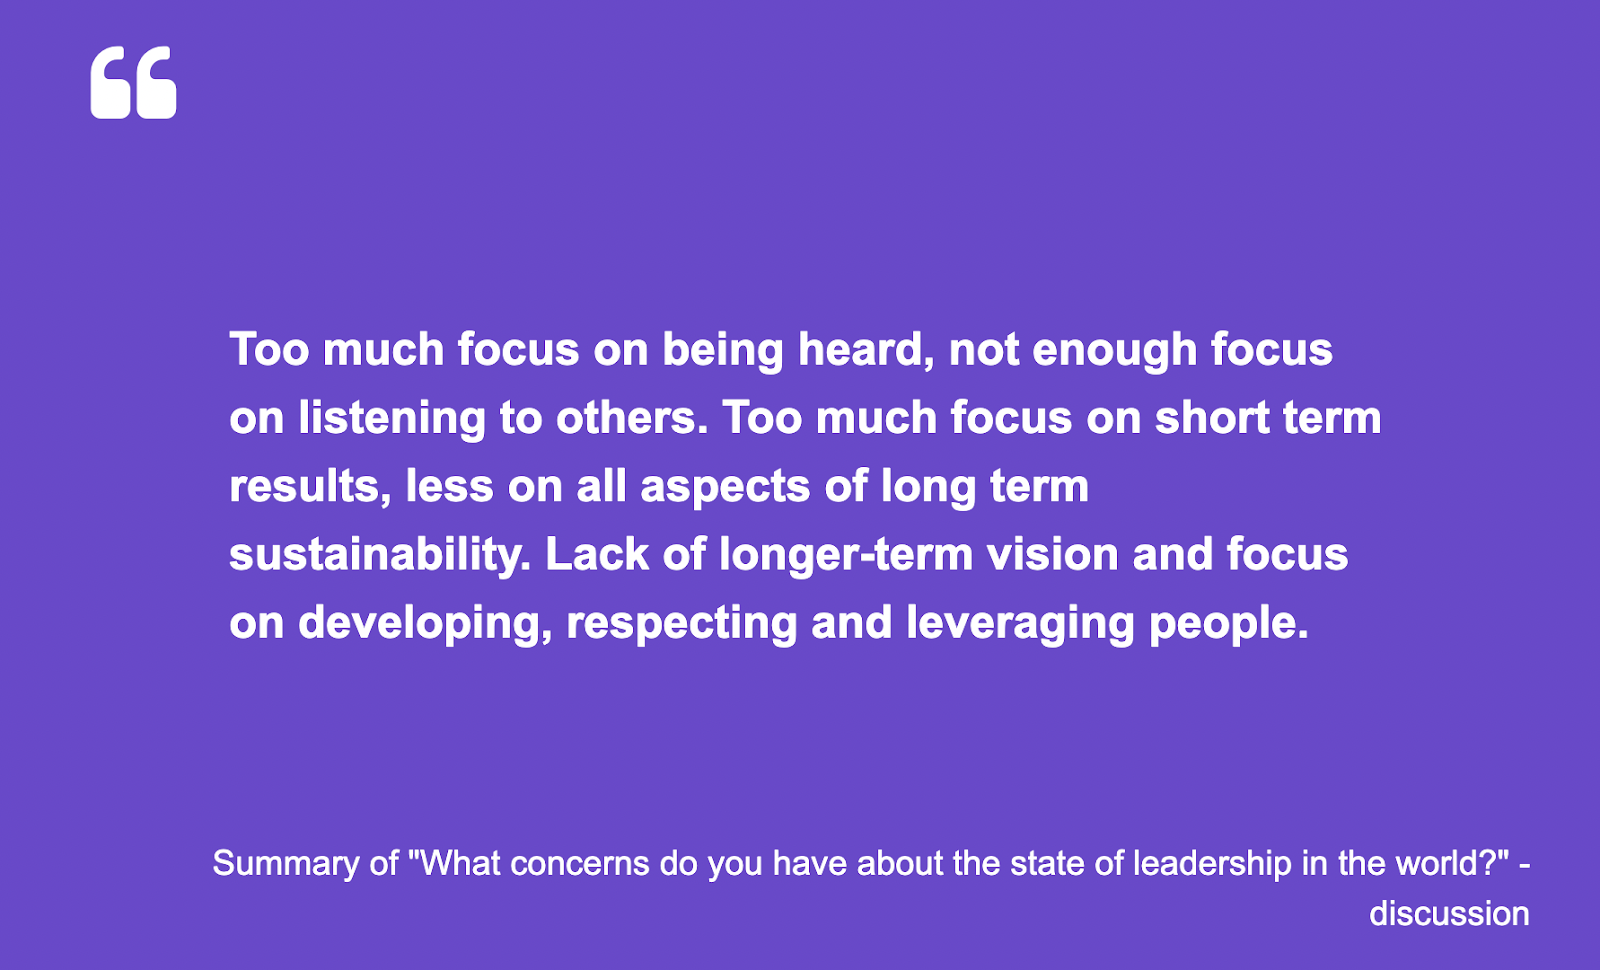 """Howspace AI summary of """"What concerns do you have about the state of leadership in the world?"""" discussion"""